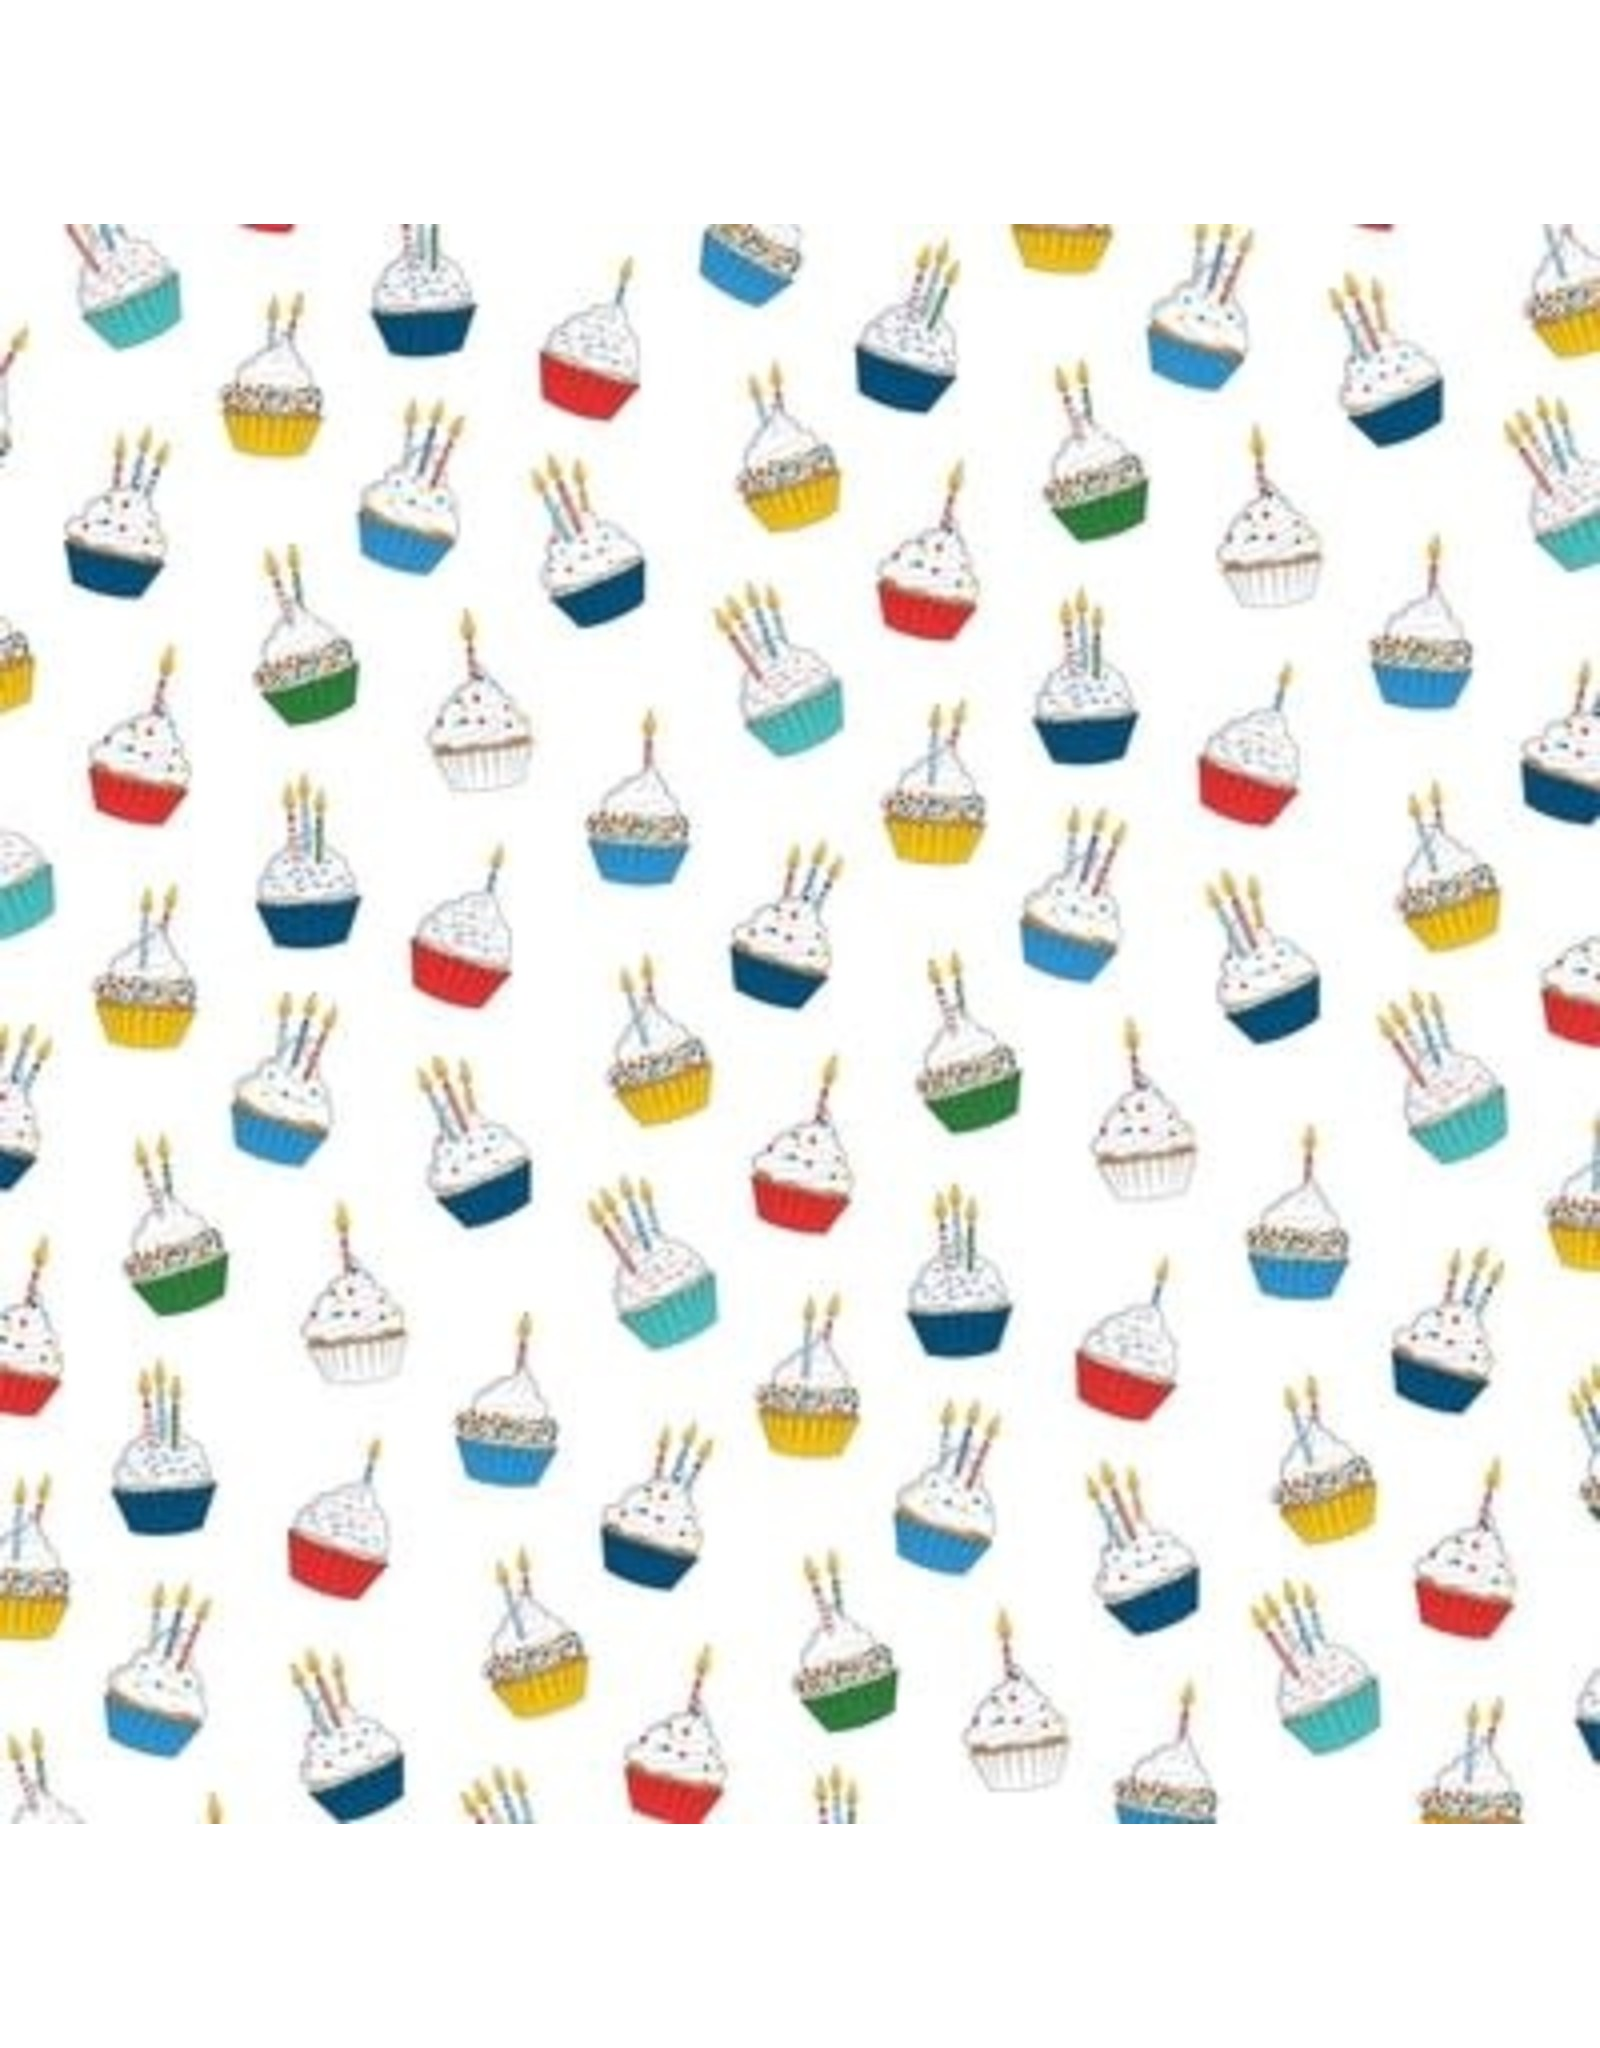 Echo Park 12X12 Patterned Paper, Let's Celebrate - Cupcake Daydream